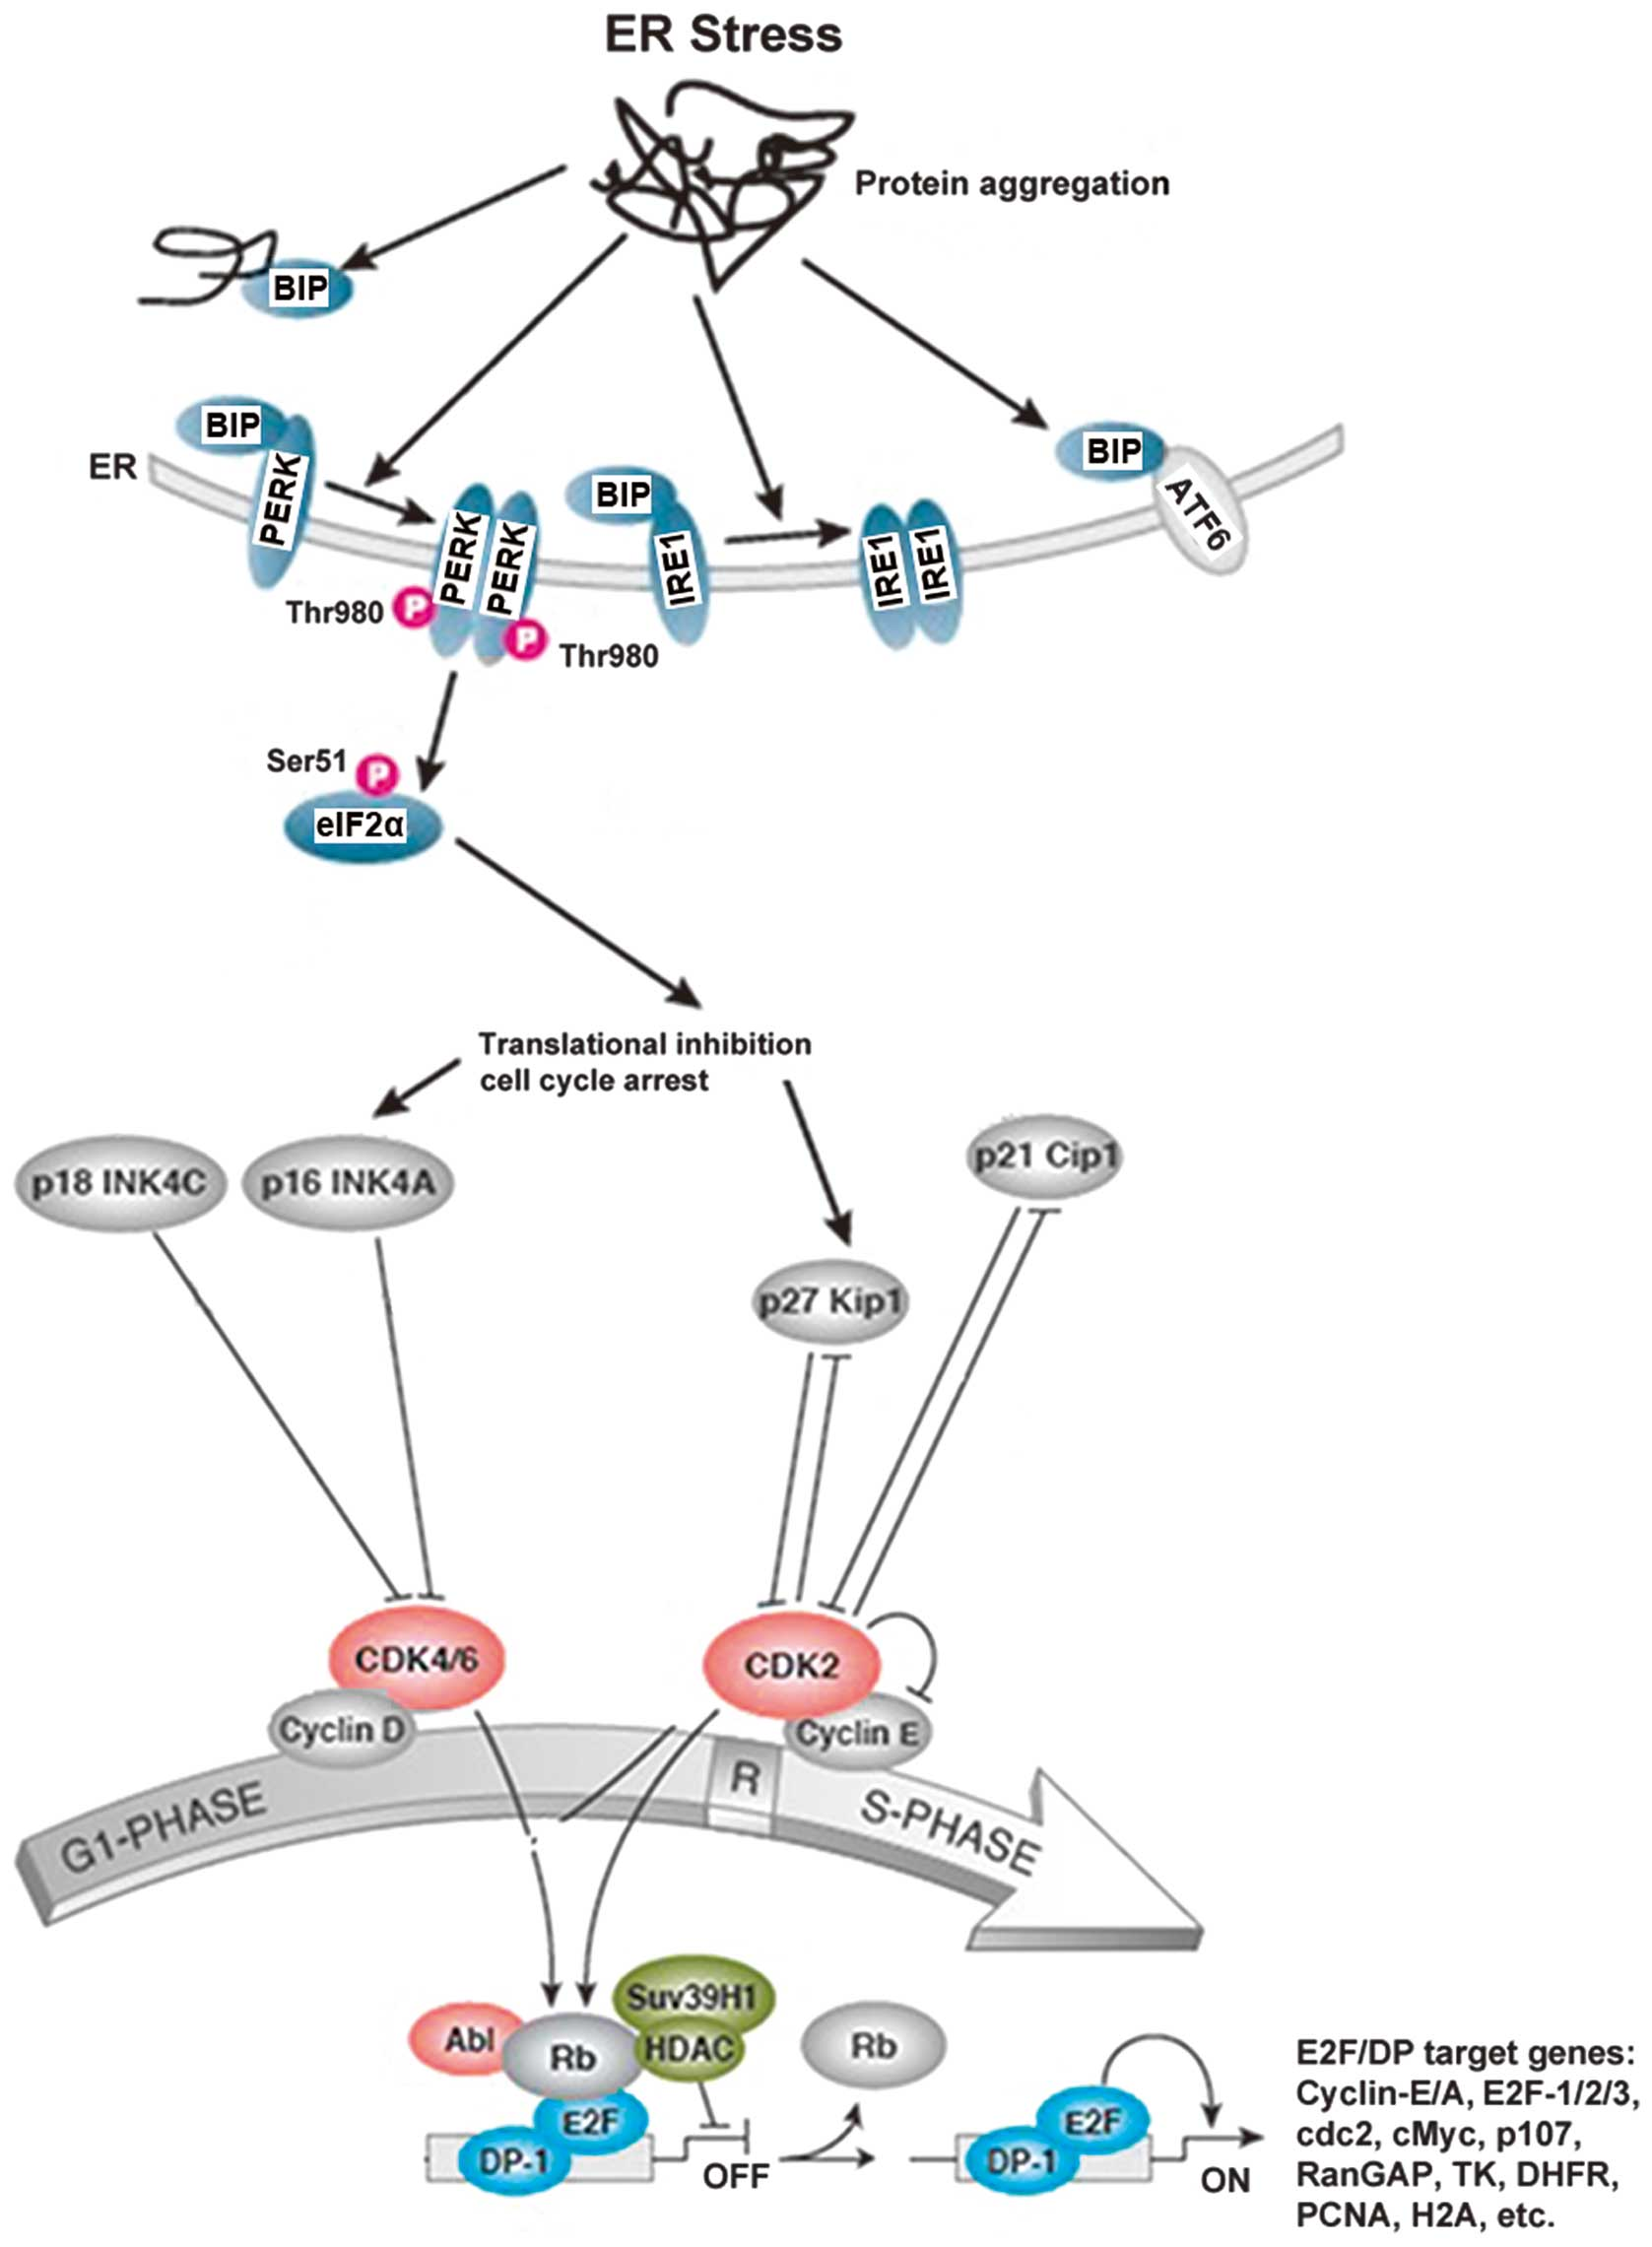 glycyrrhetinic acid induces g1 phase cell cycle arrest in human non